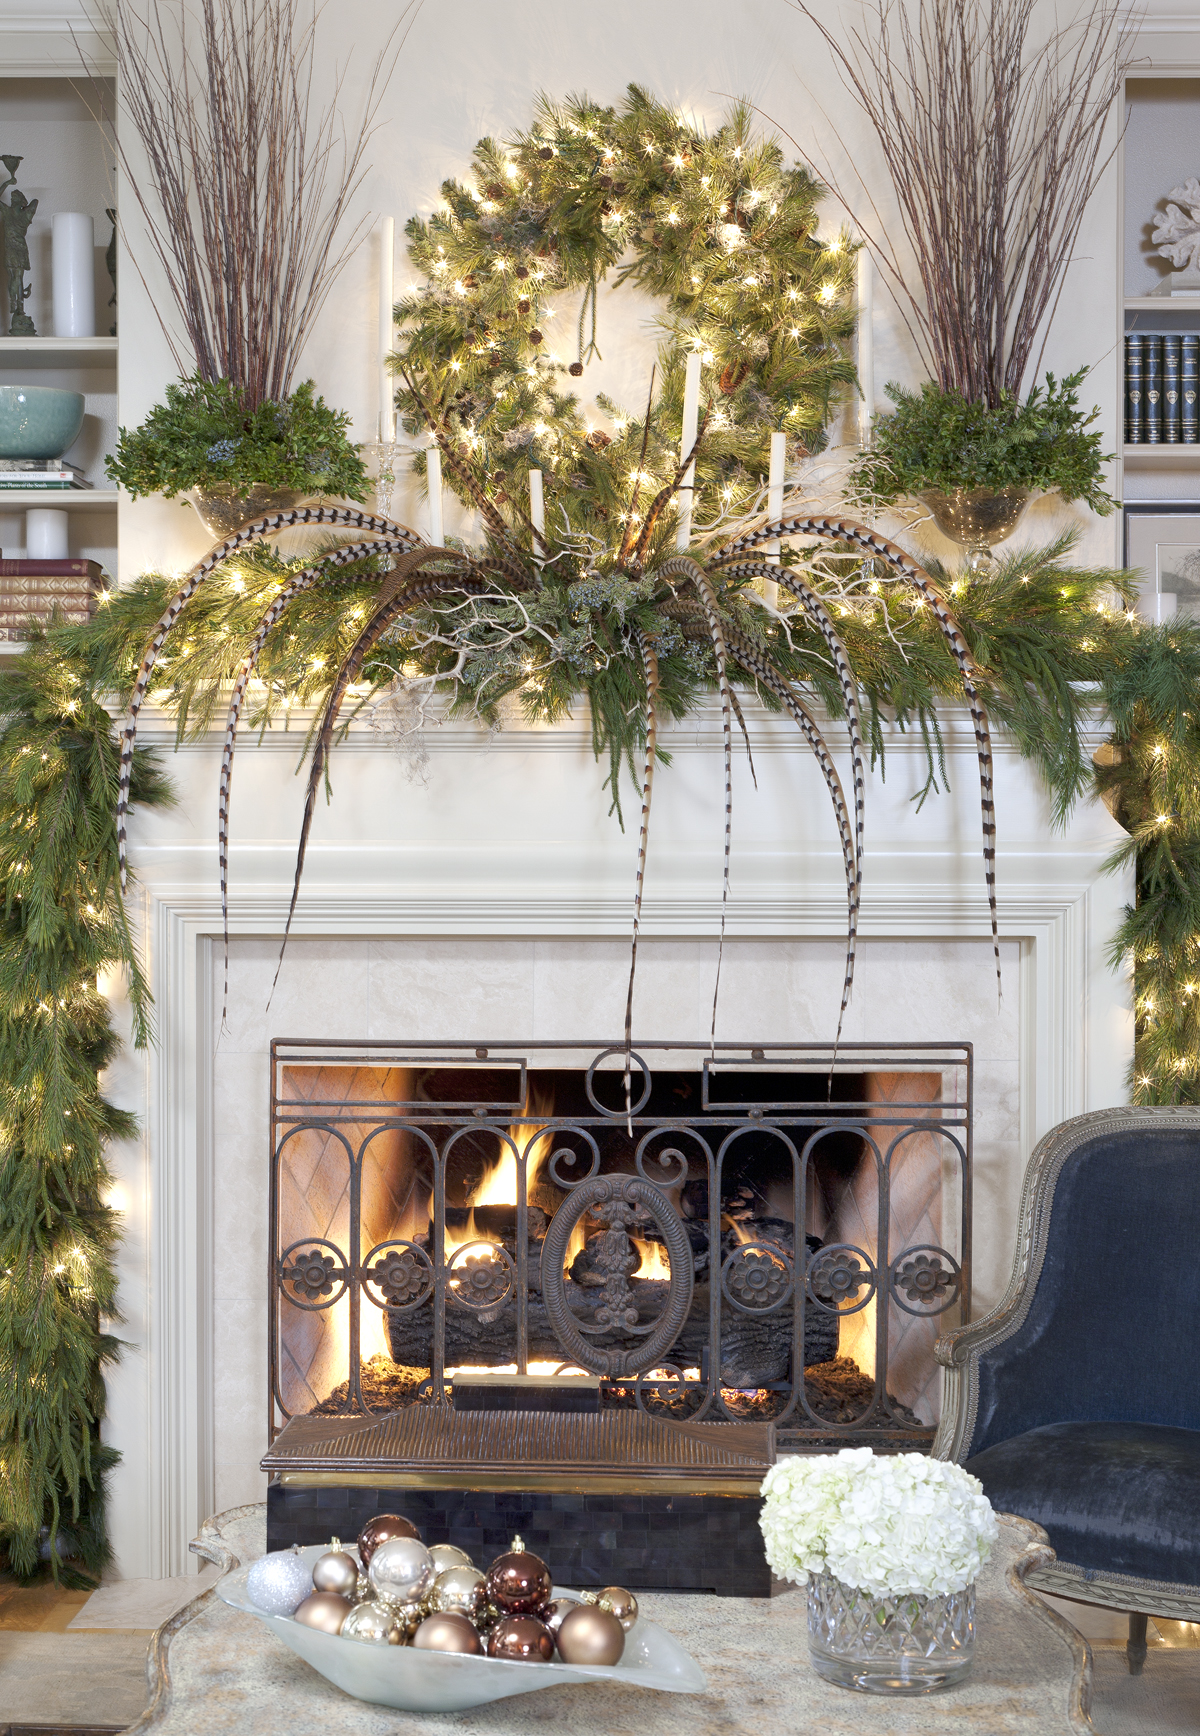 christmas mantel ideas, white lit fireplace, decorated with green pine garlands, a classic pine wreath, pheasant feathers and glowing string lights